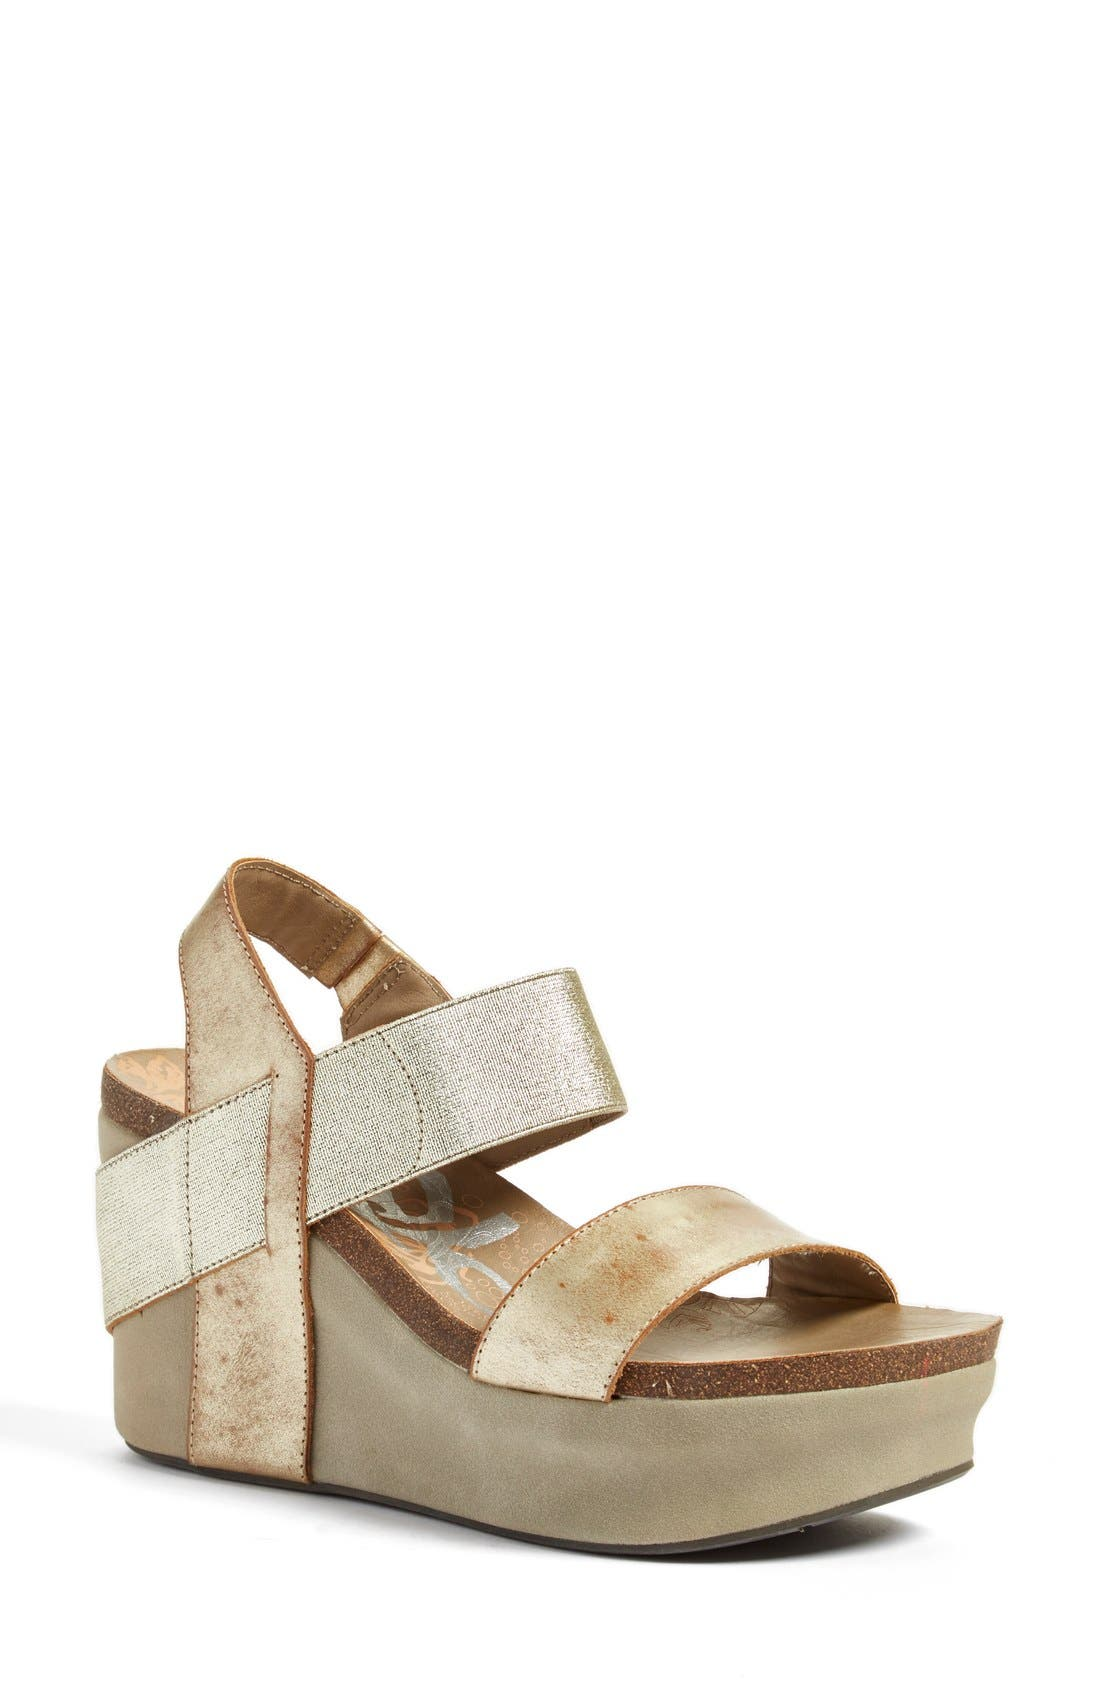 OTBT 'Bushnell' Wedge Sandal